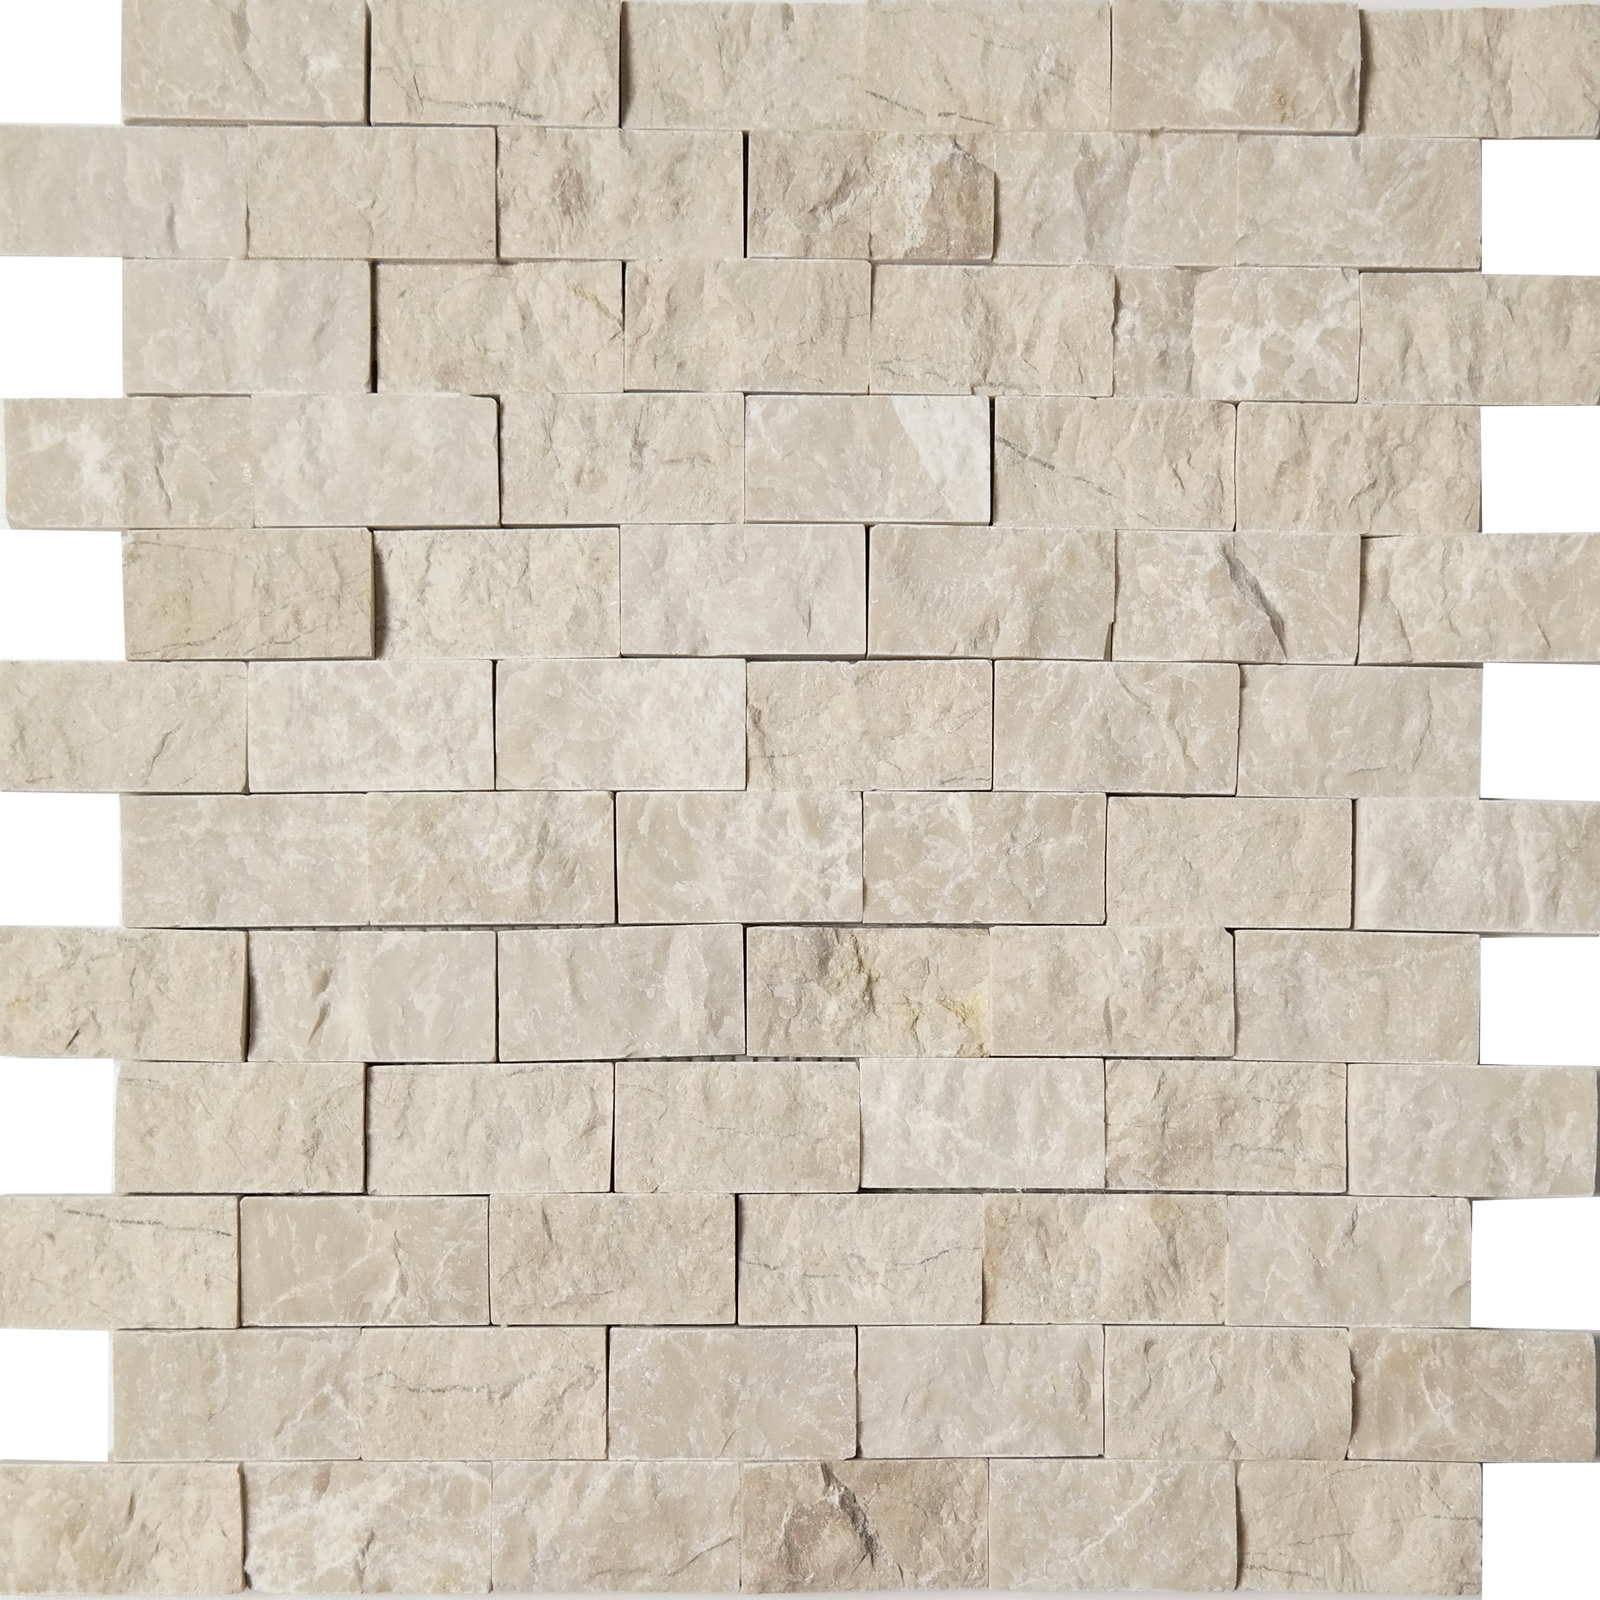 1x2 Split Face Mosaic Bottichino Marble